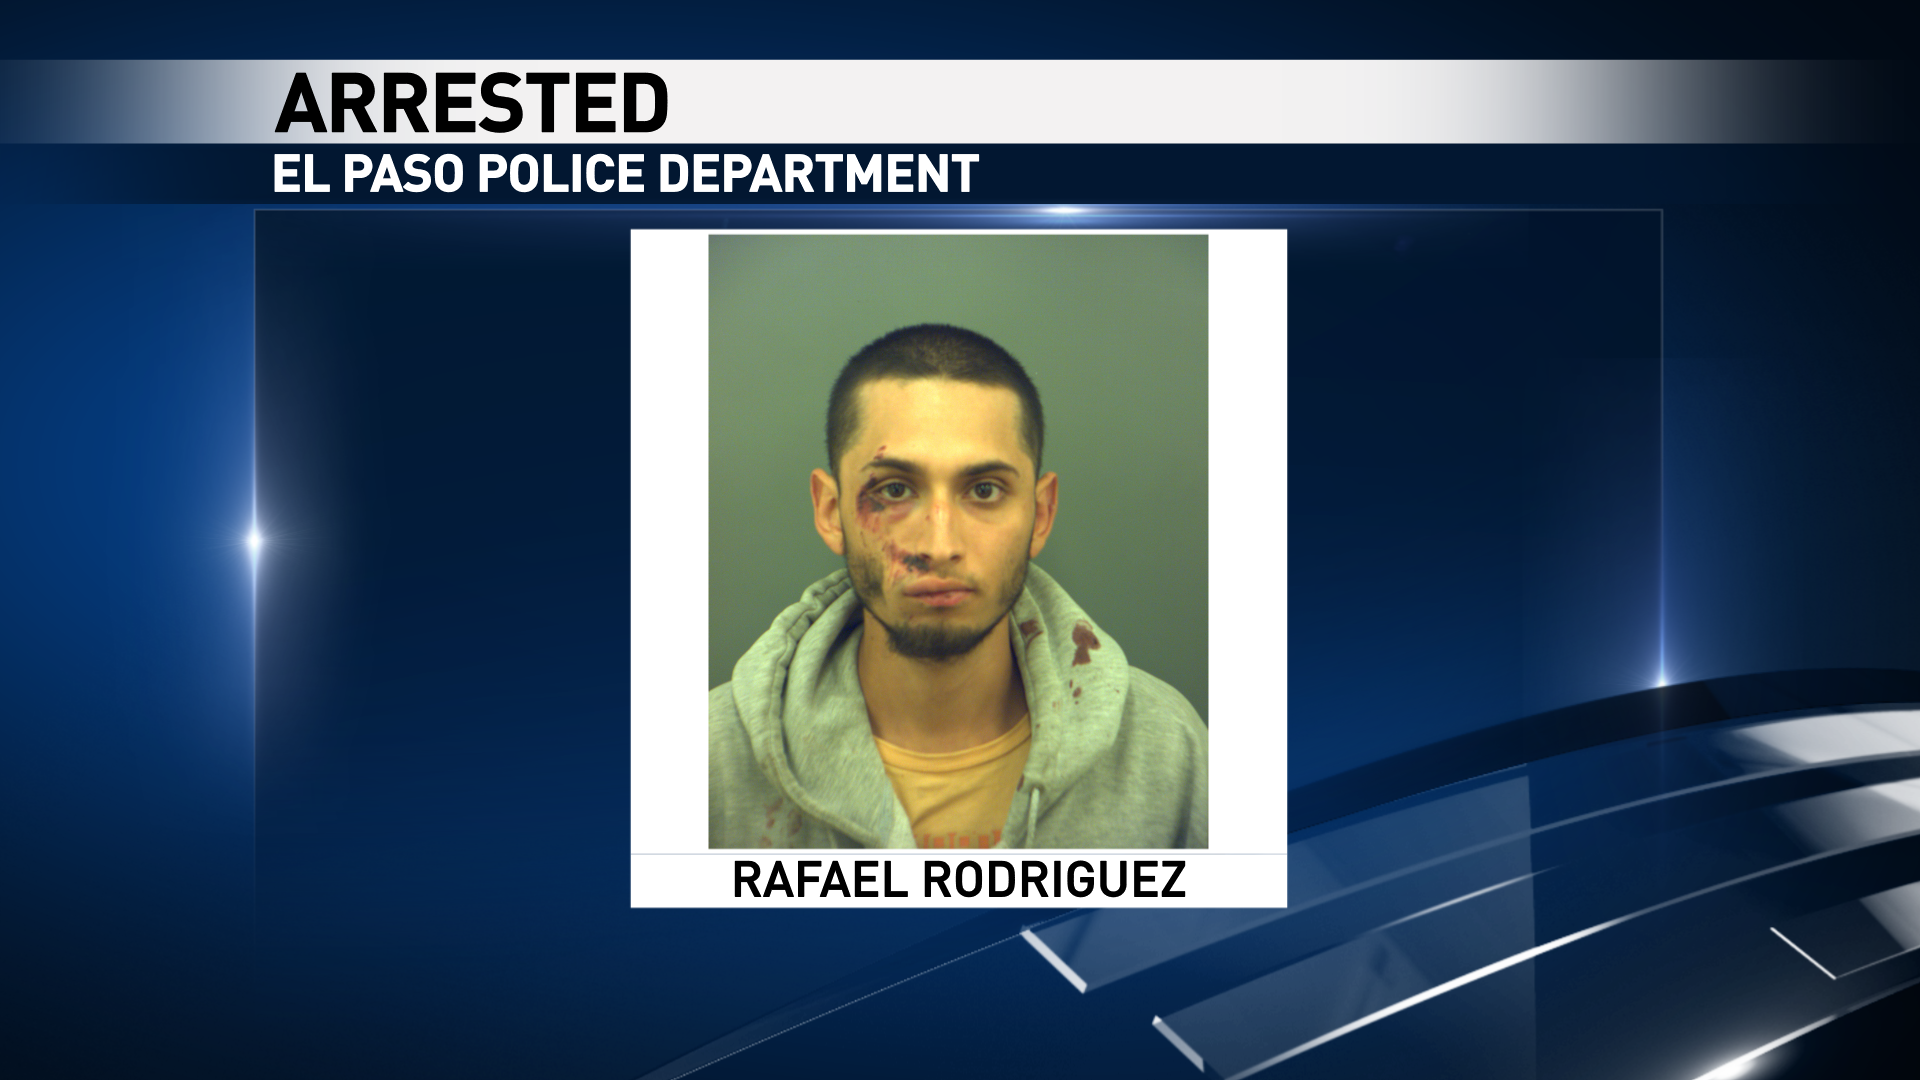 Rafael Rodriguez charged with aggravated assault in a fight that resulted in someone being stabbed.